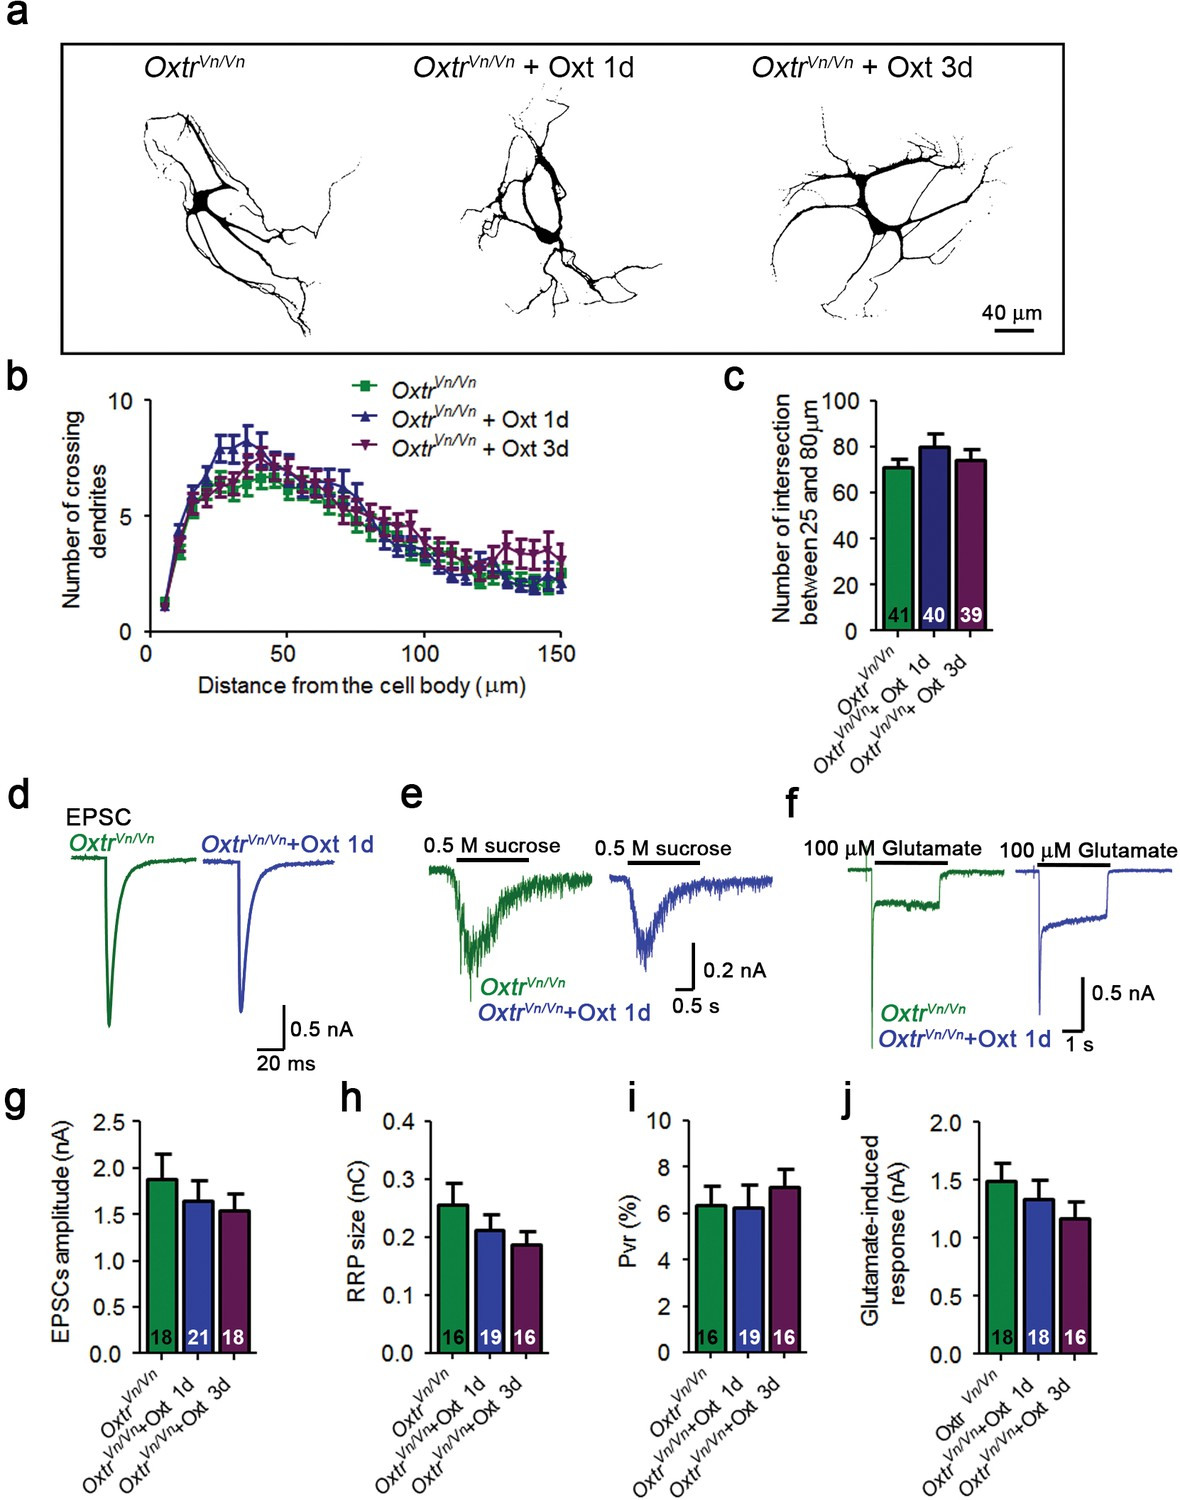 Transient oxytocin signaling primes the development and